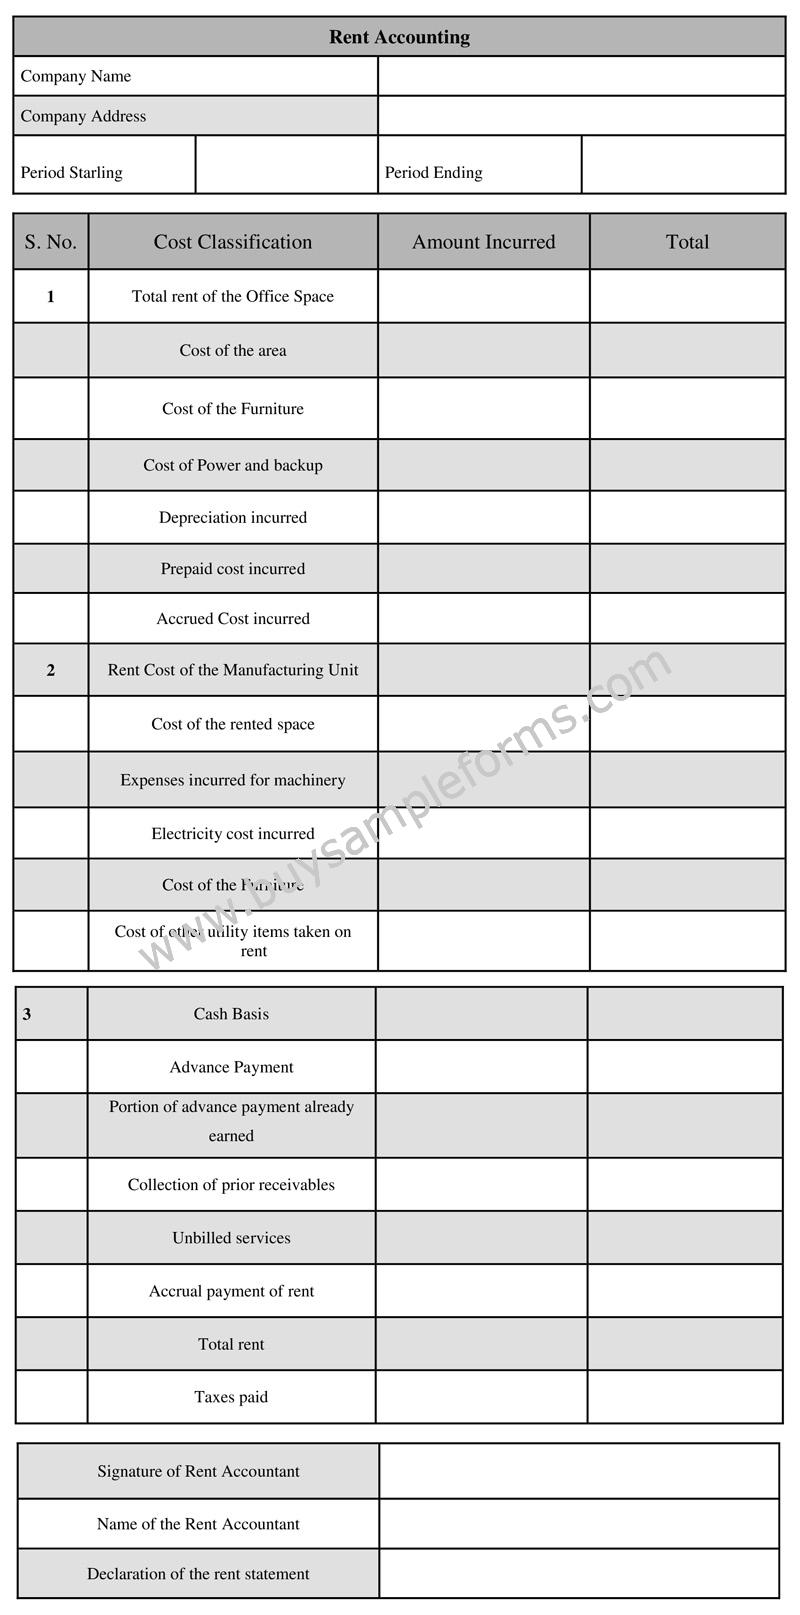 Printable Rent Accounting Form, Rental Accounting Template Sample